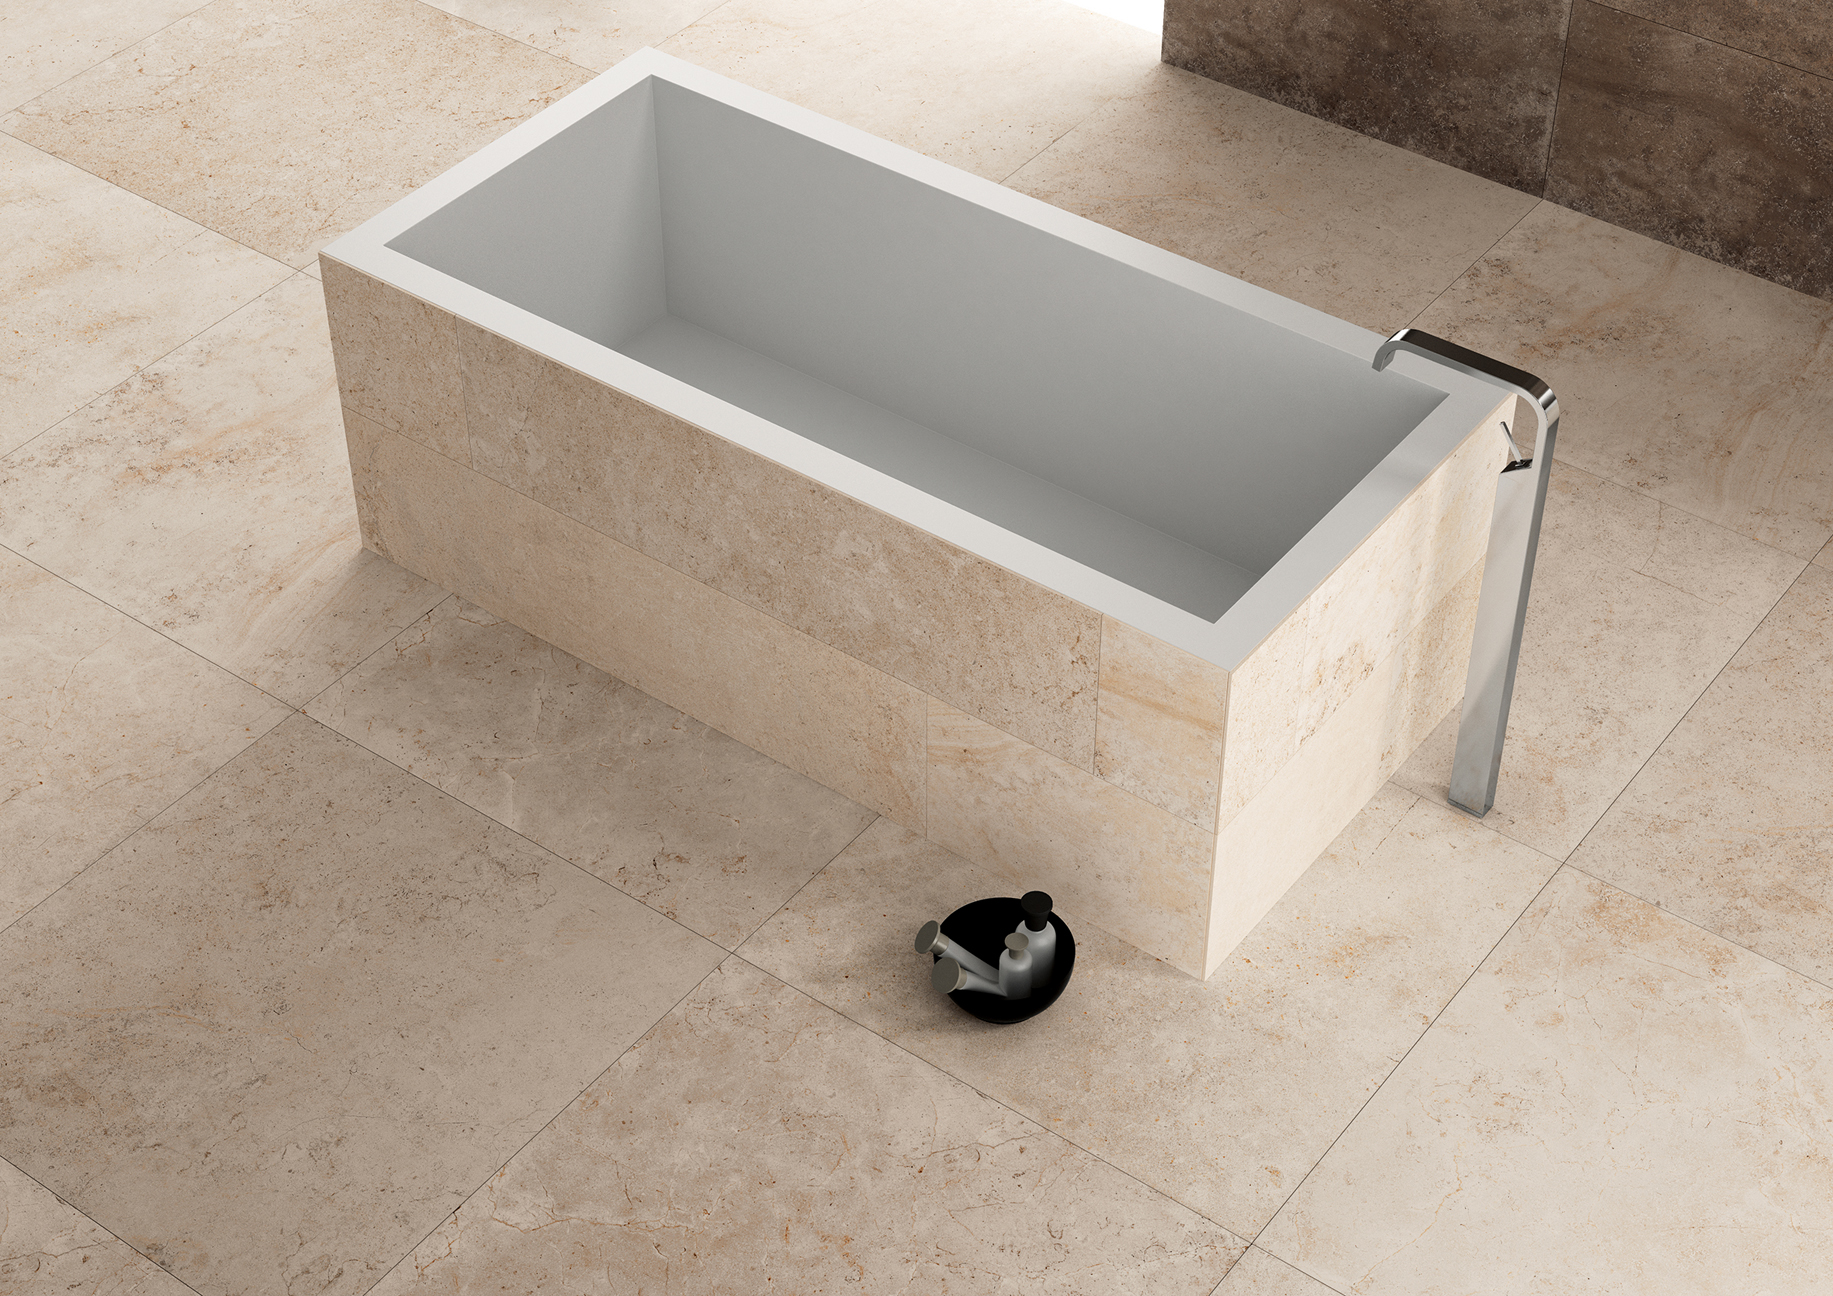 porcelain tile images: Antica range high quality photo